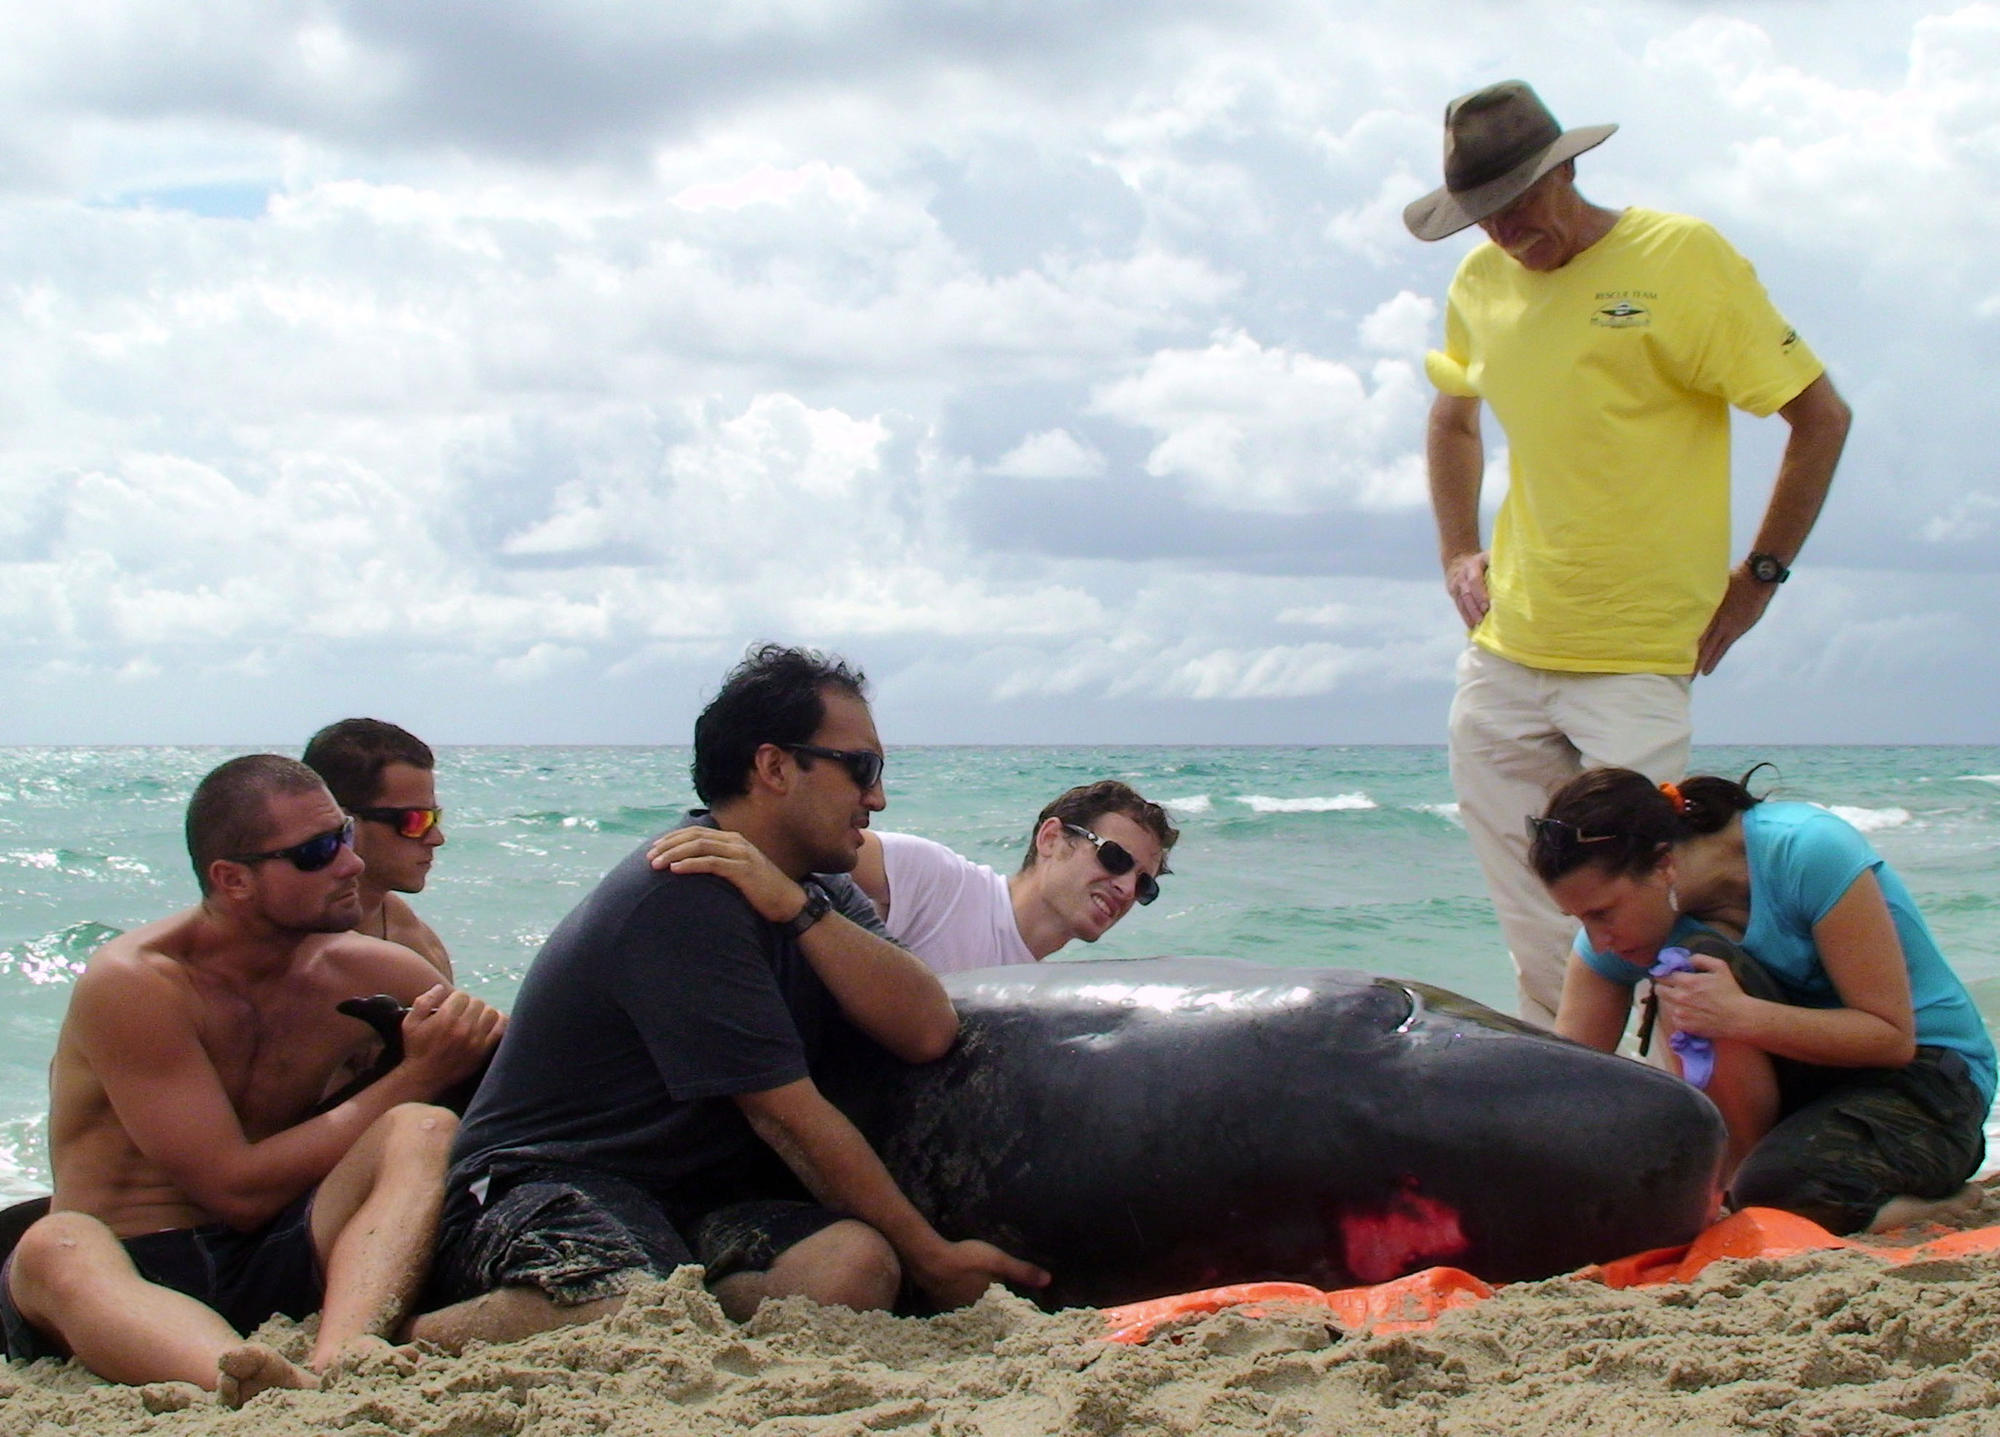 Whale dies after washing ashore in palm beach county sun for Delray beach fishing